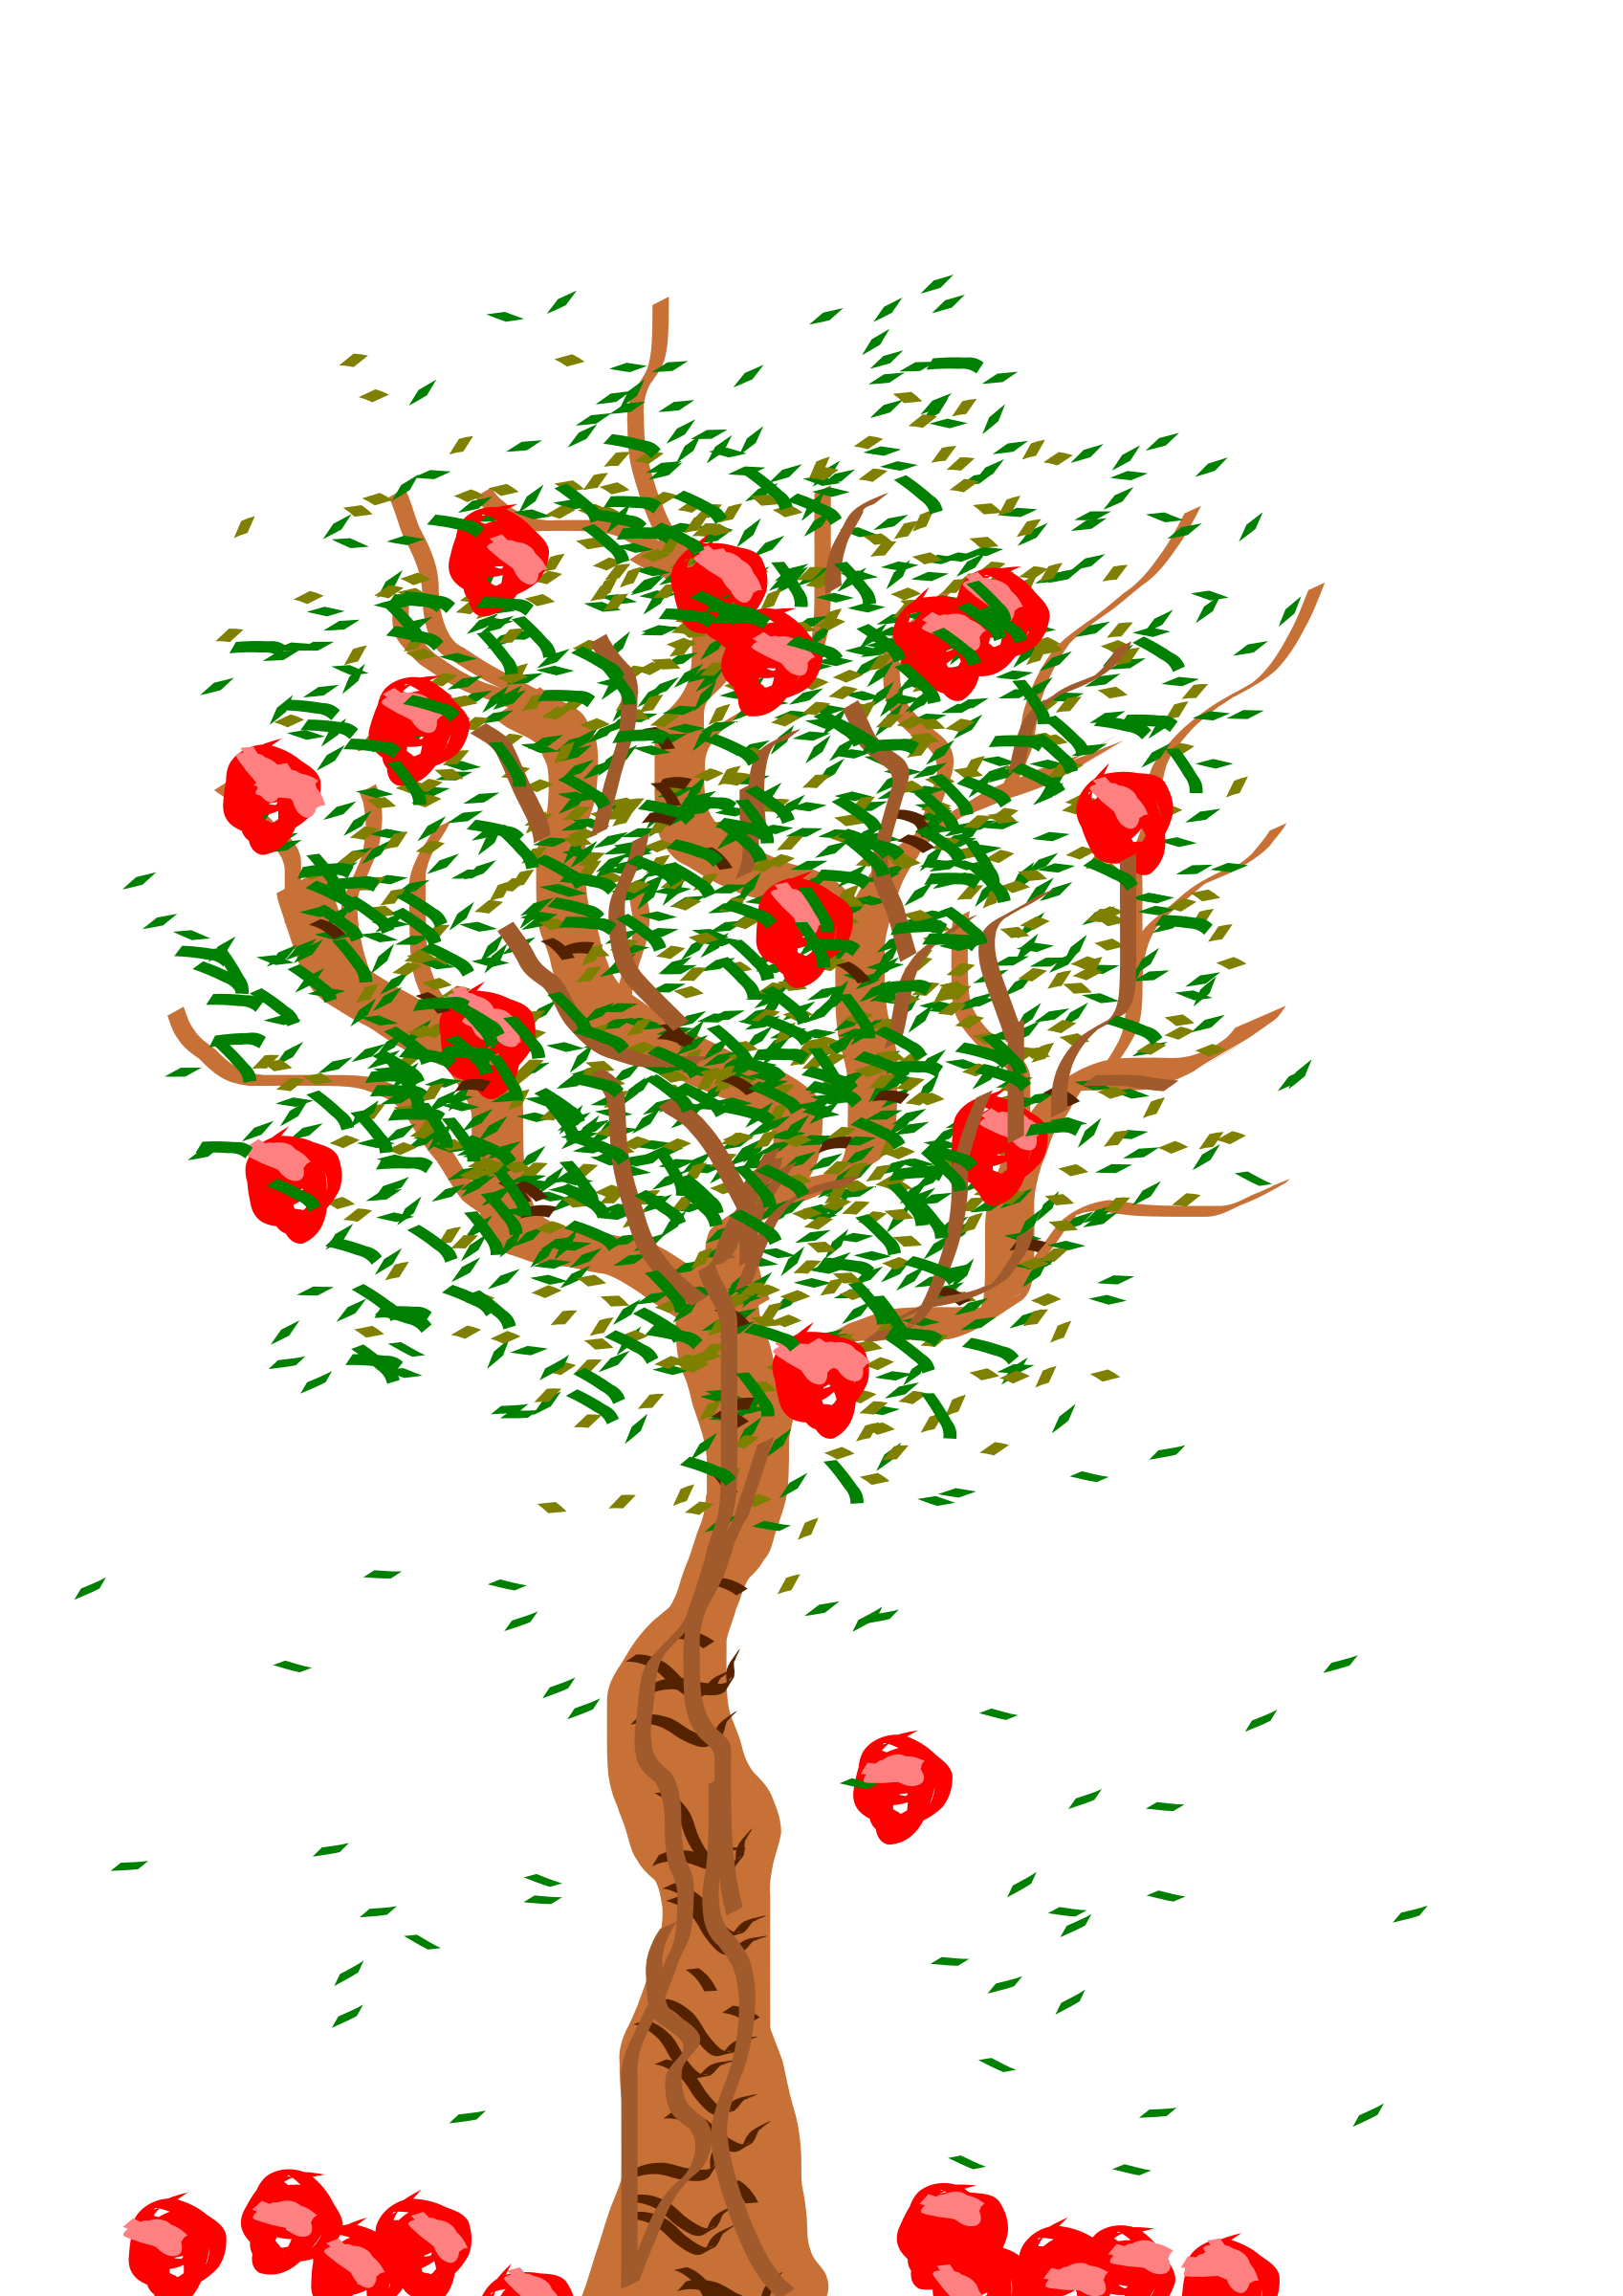 Leaf clipart apple tree. Big image png